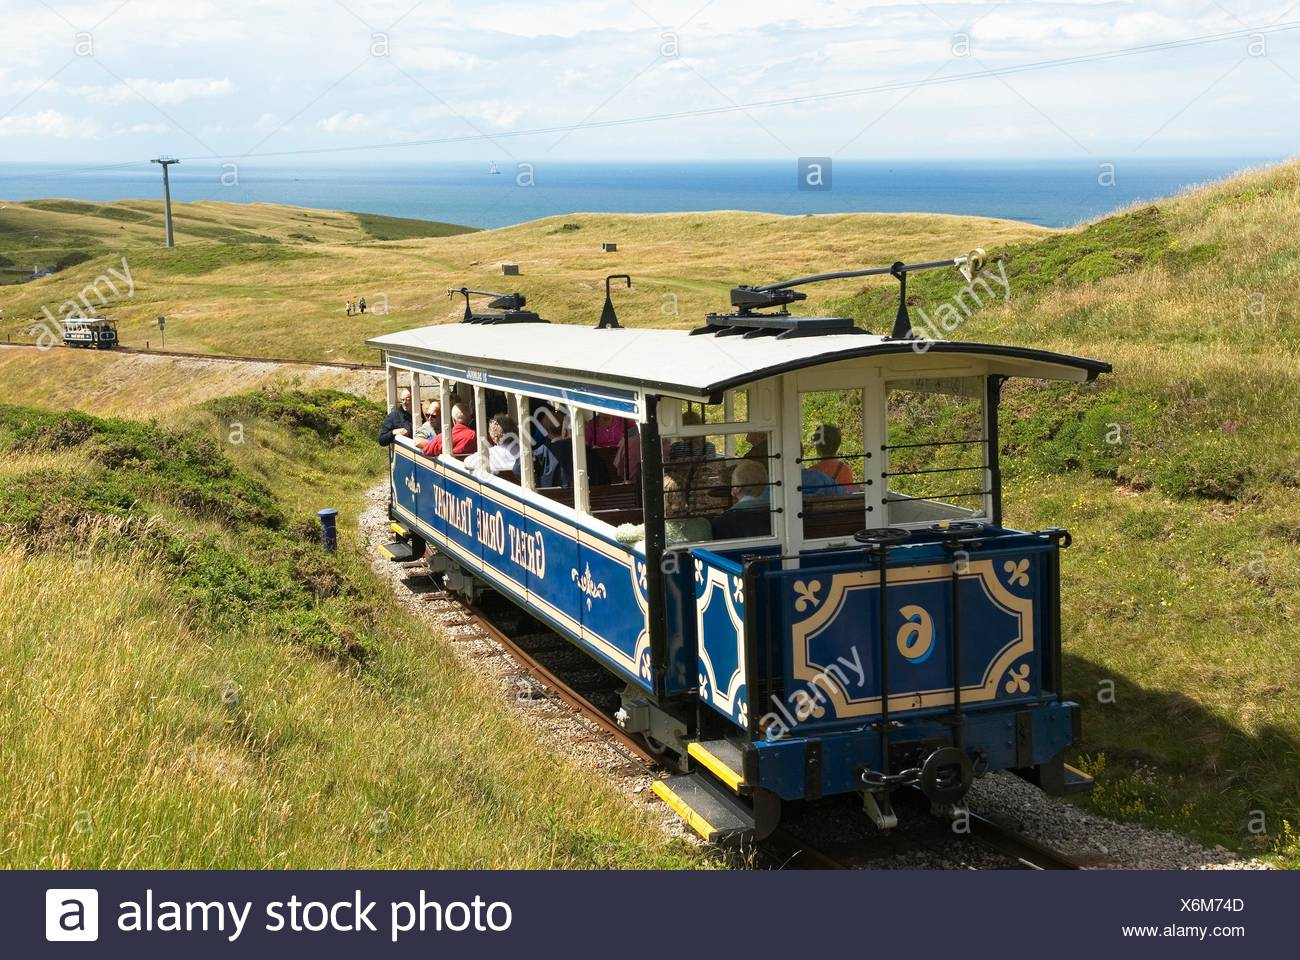 Great Orme Tramway,Llandudno,Wales,United Kingdom,Great Britain,Europe Stock Photo